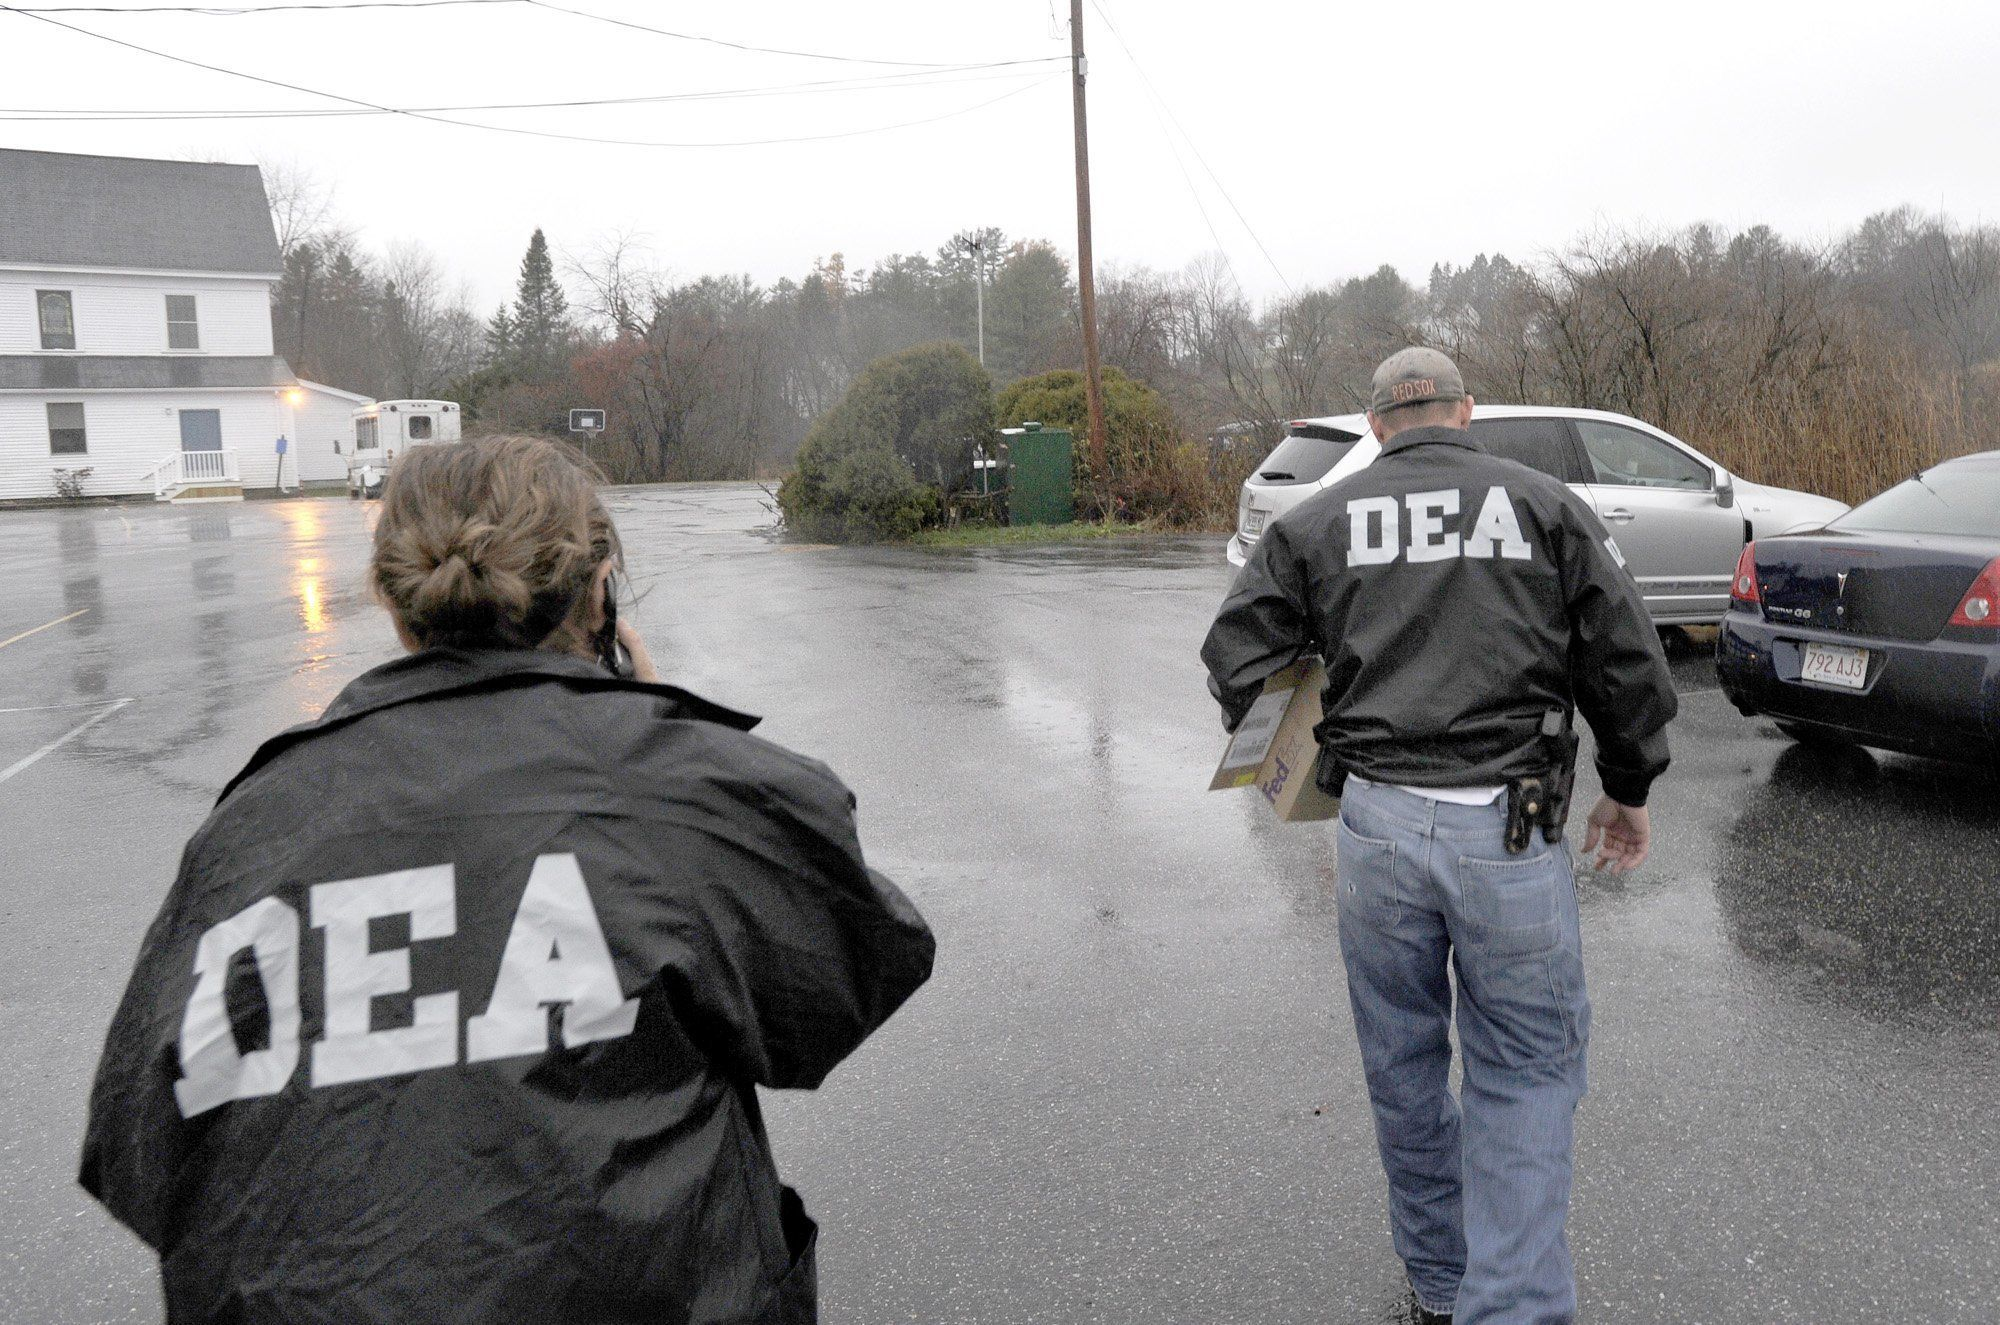 DEA agents have received only short suspensions for failing drug tests, new documents show.